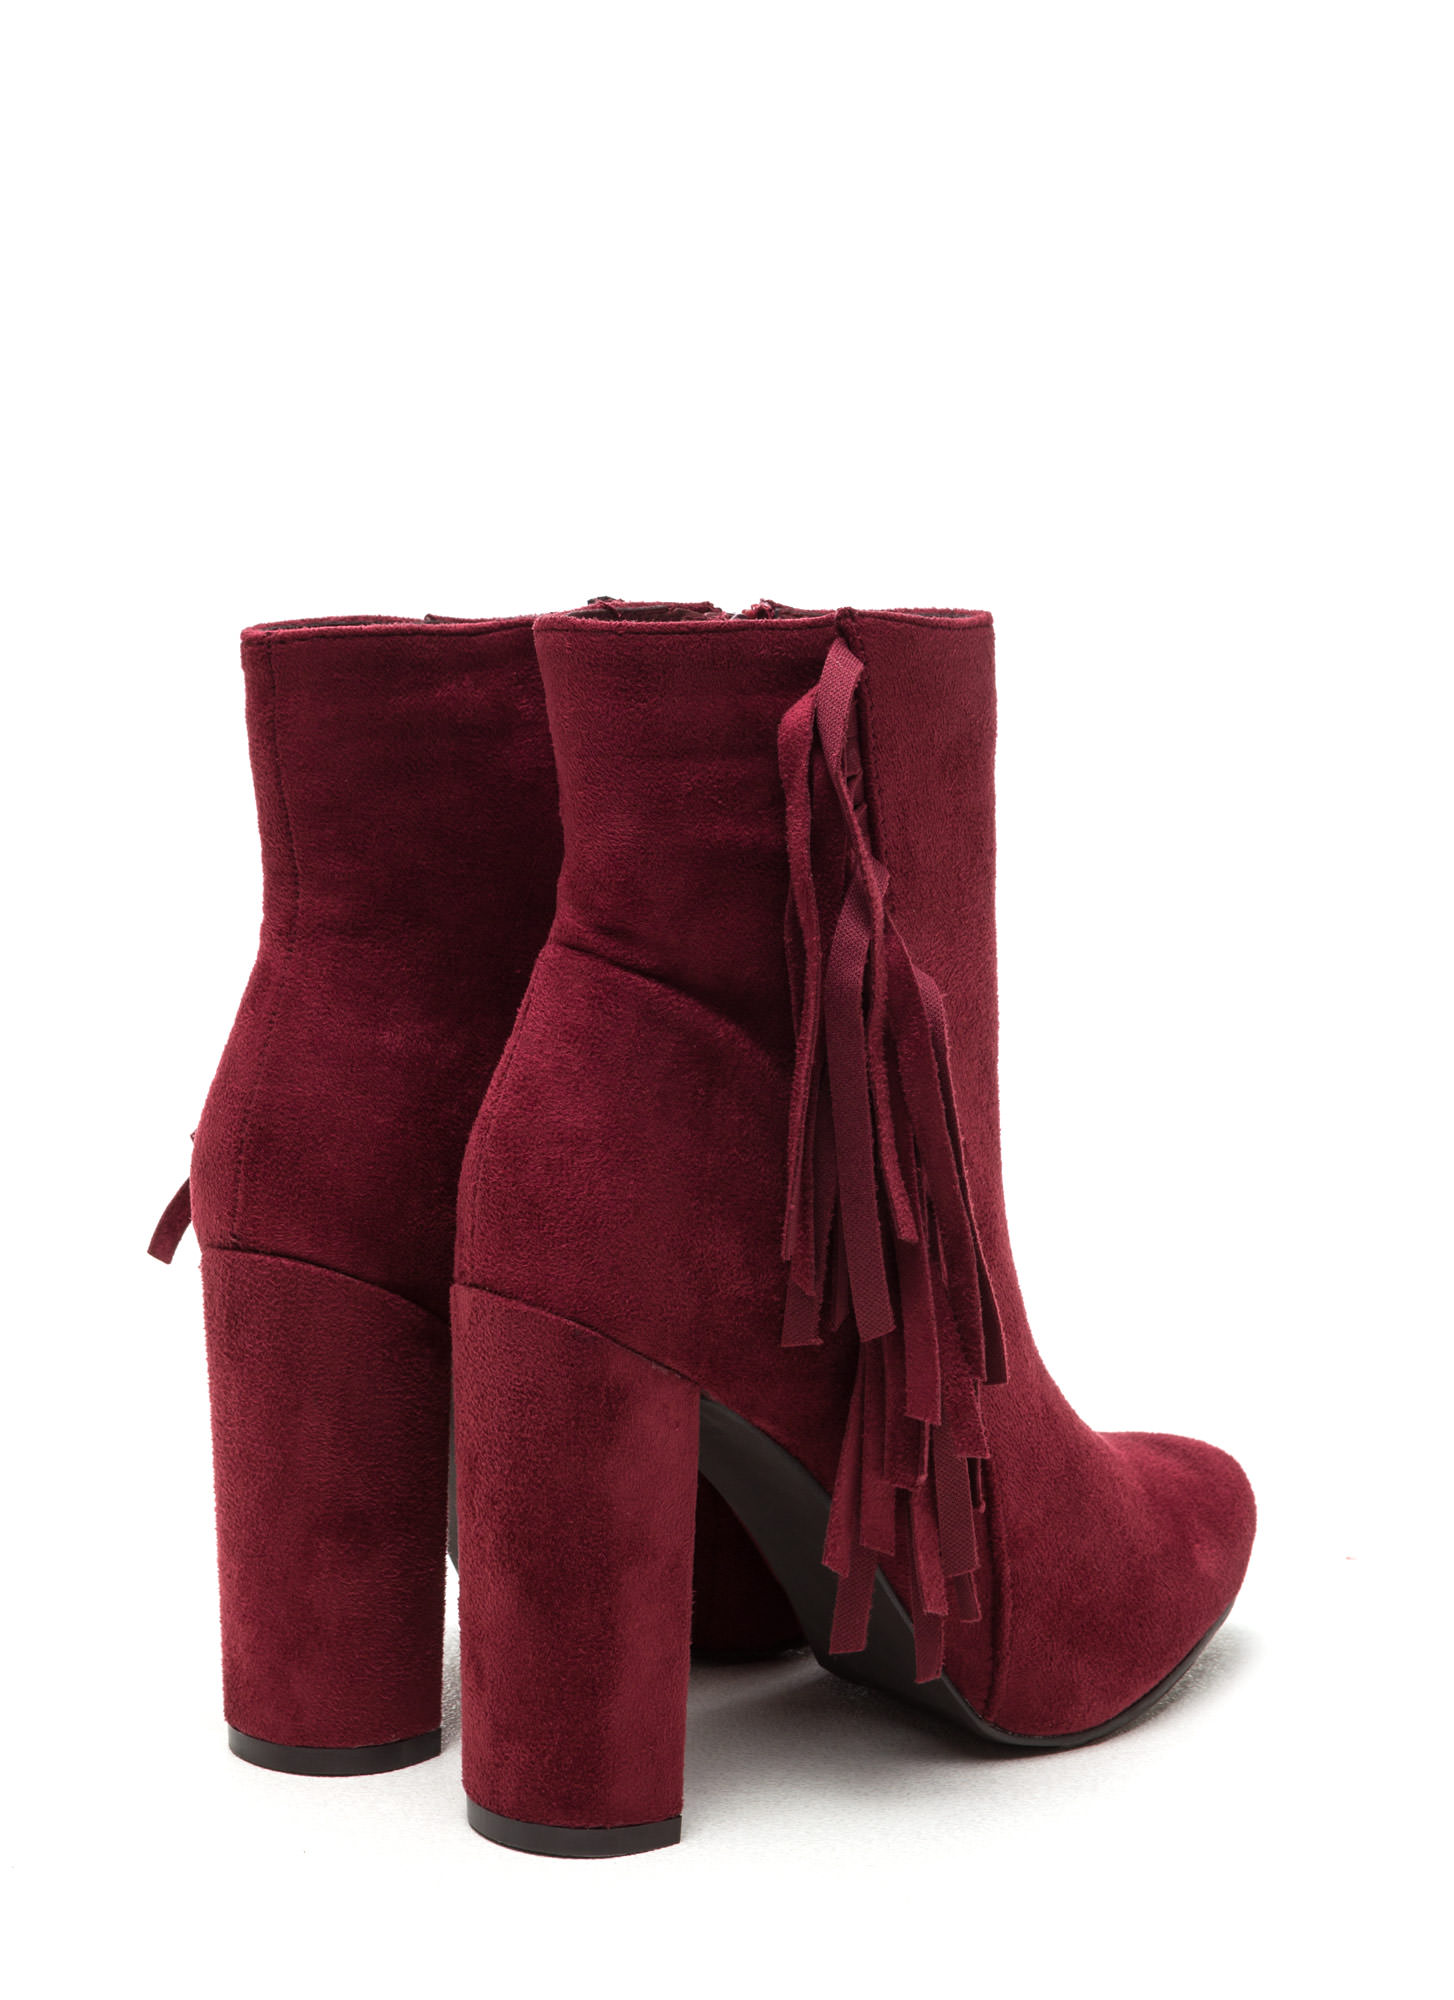 Fringe-Off Chunky Faux Suede Booties BERRY